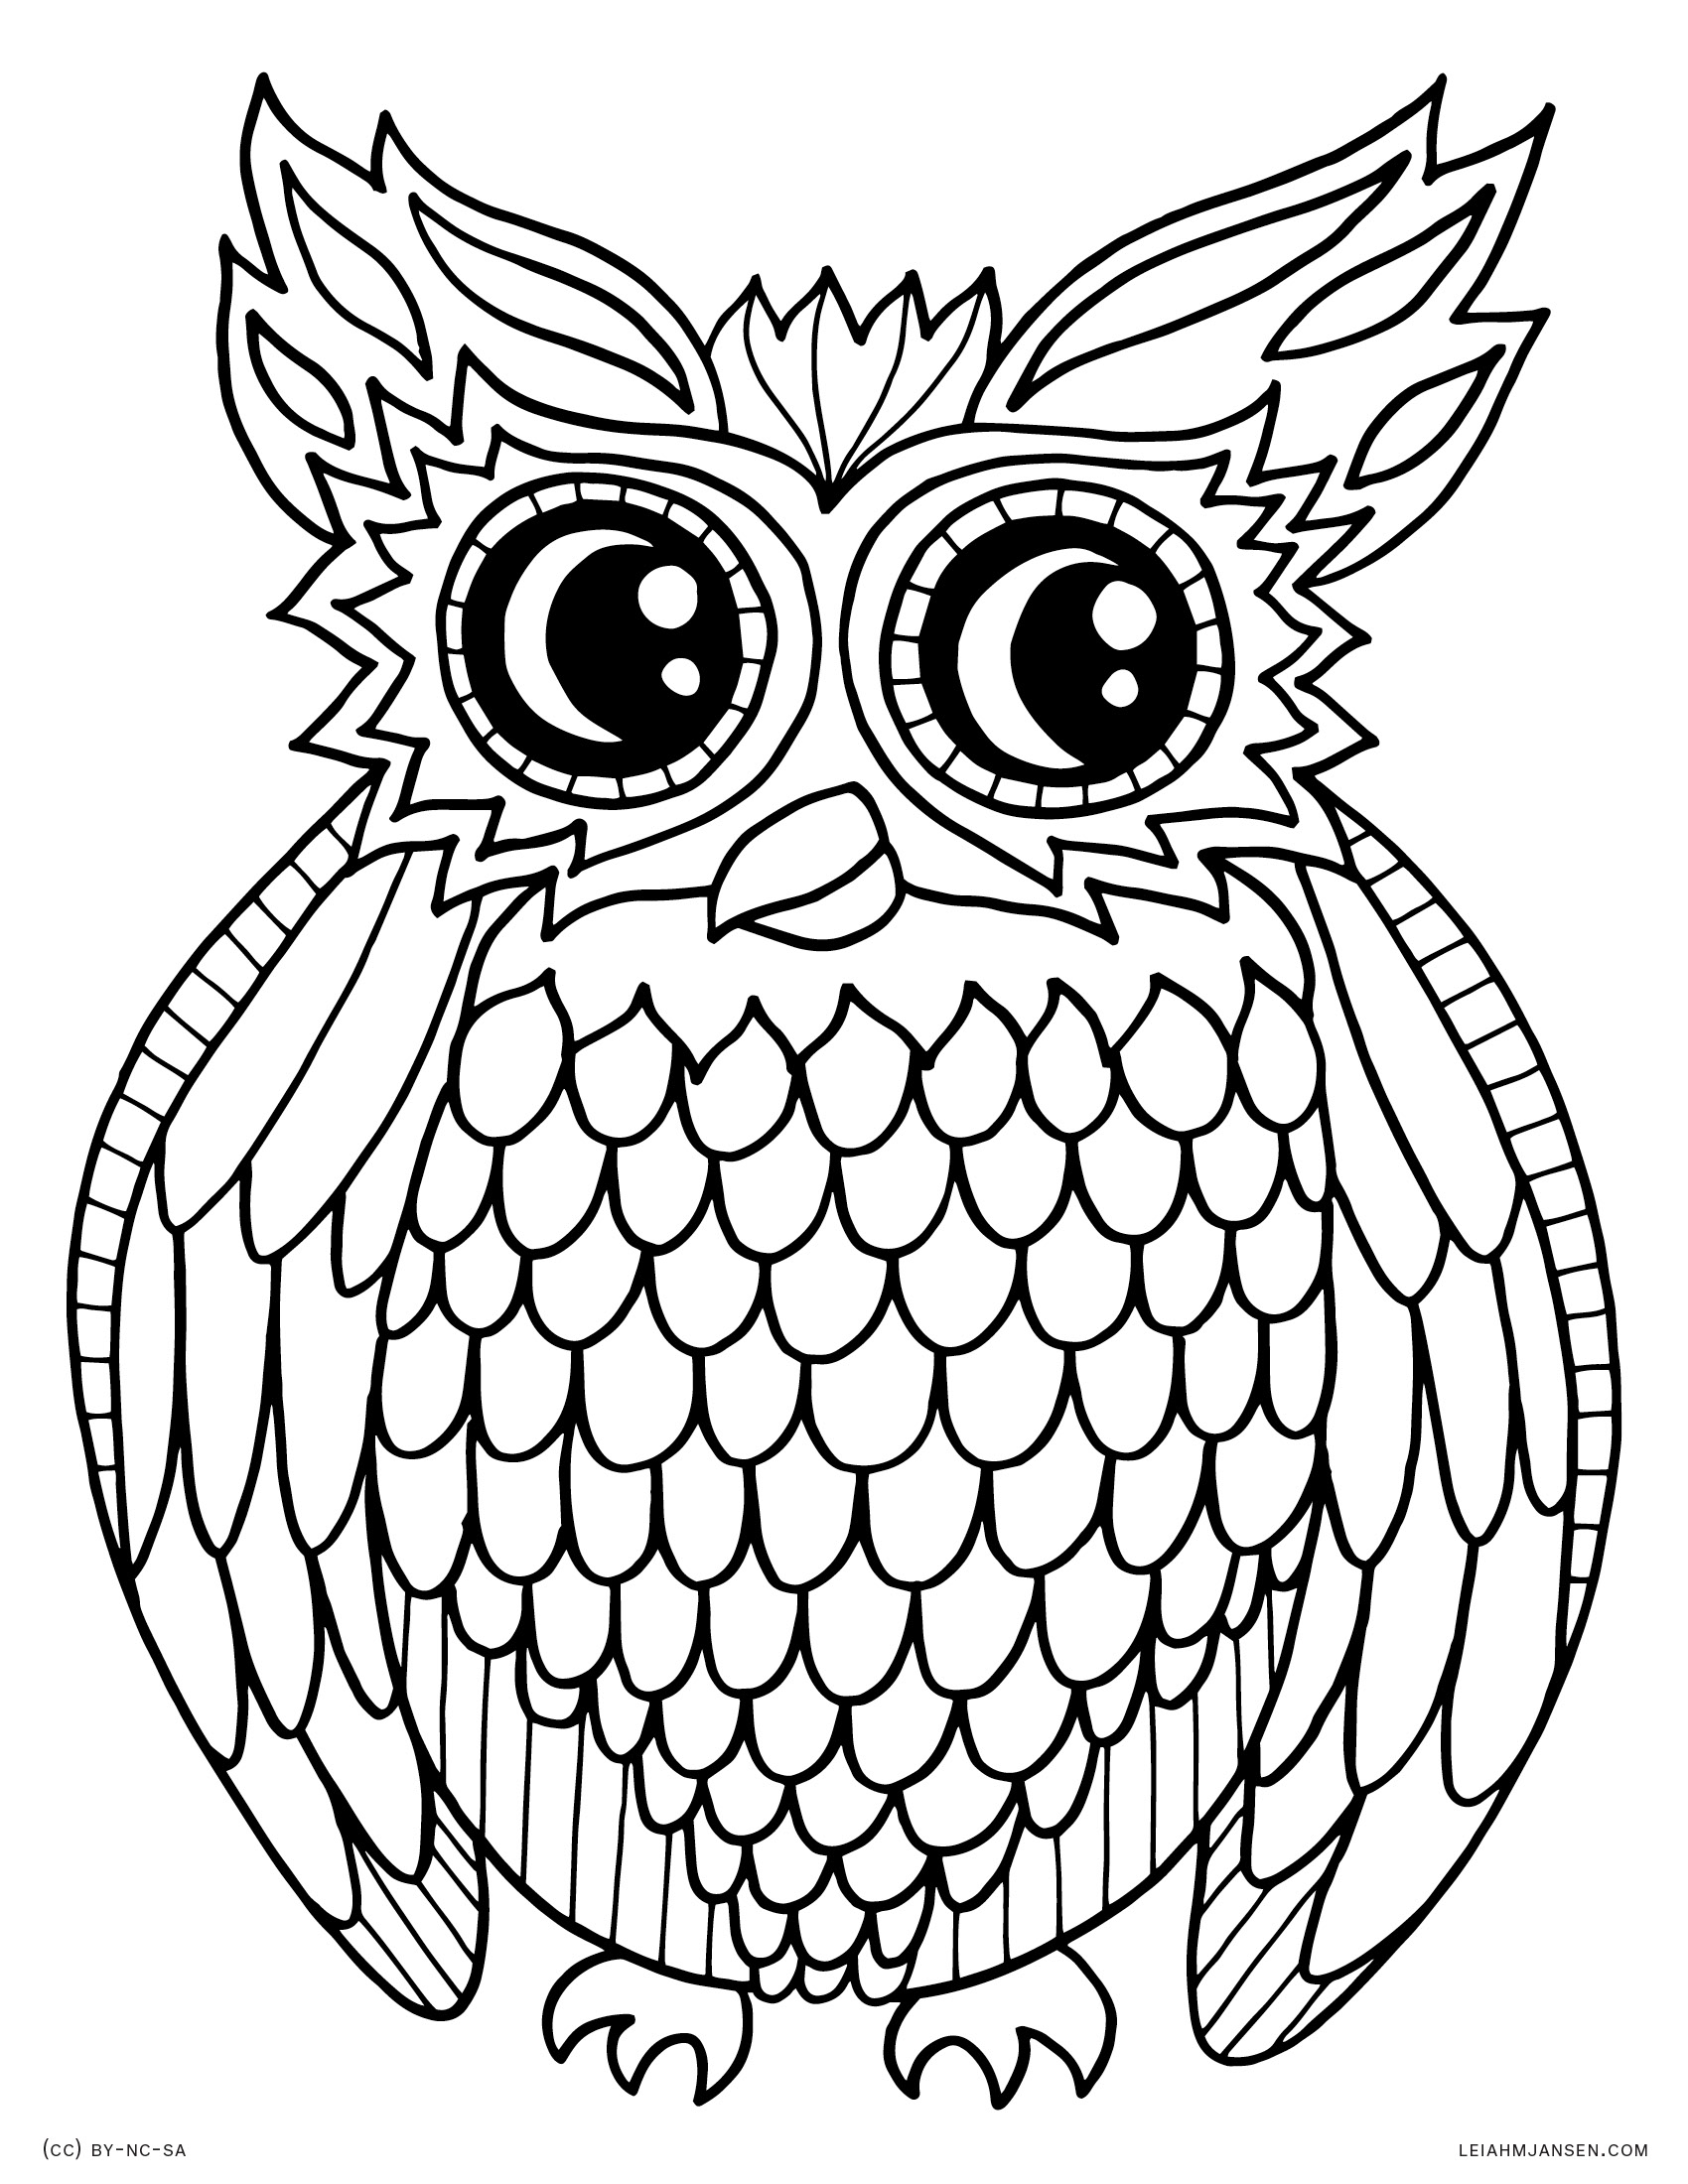 owl images to color baby owls coloring sheet to print images color owl to